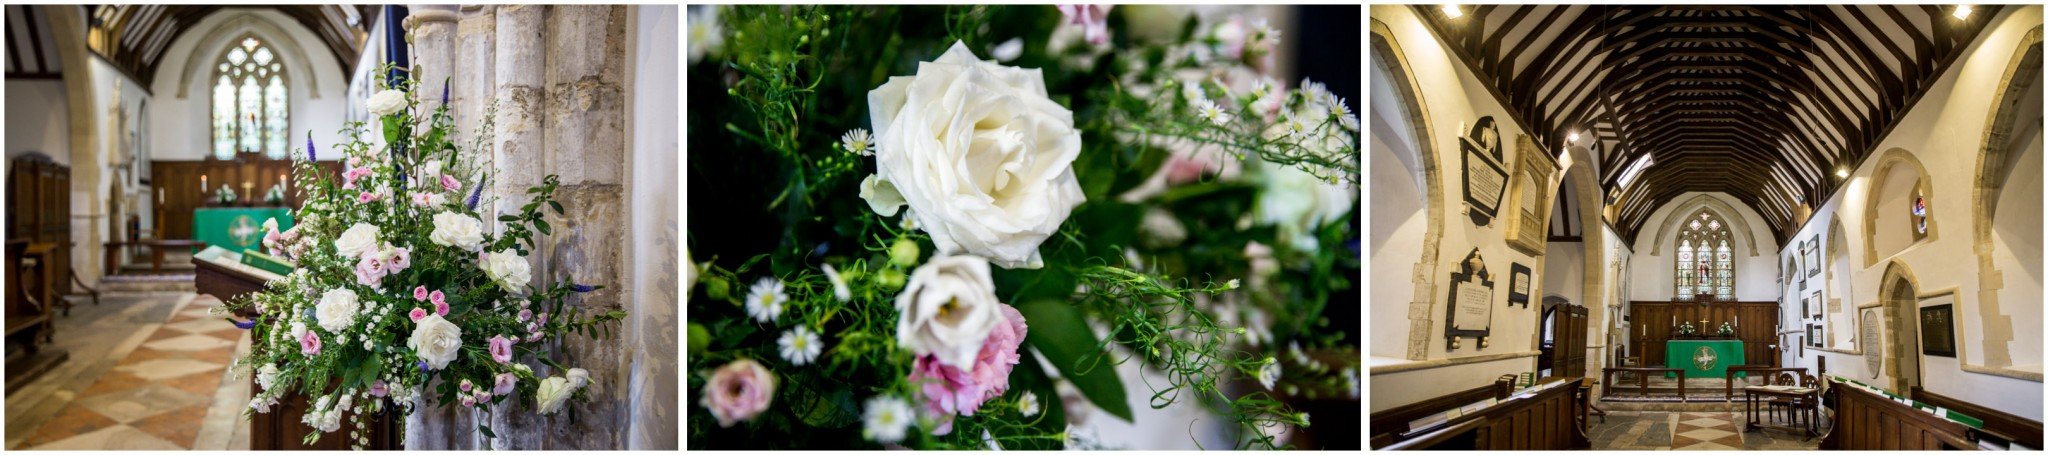 St Thomas a Becket Church Wedding Flowers